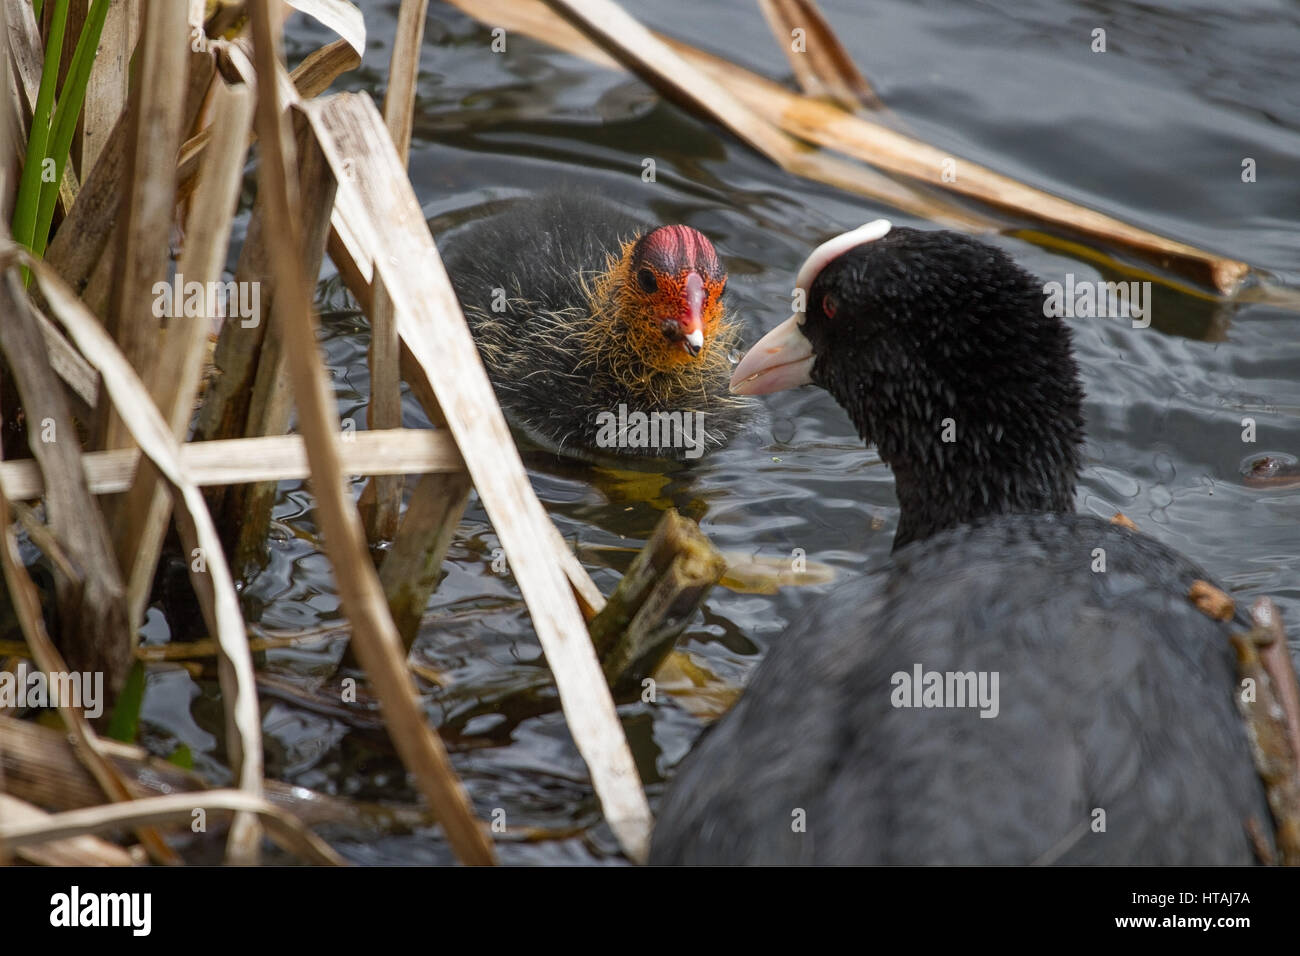 photo of an adult coot feeding it's chick with some food - Stock Image